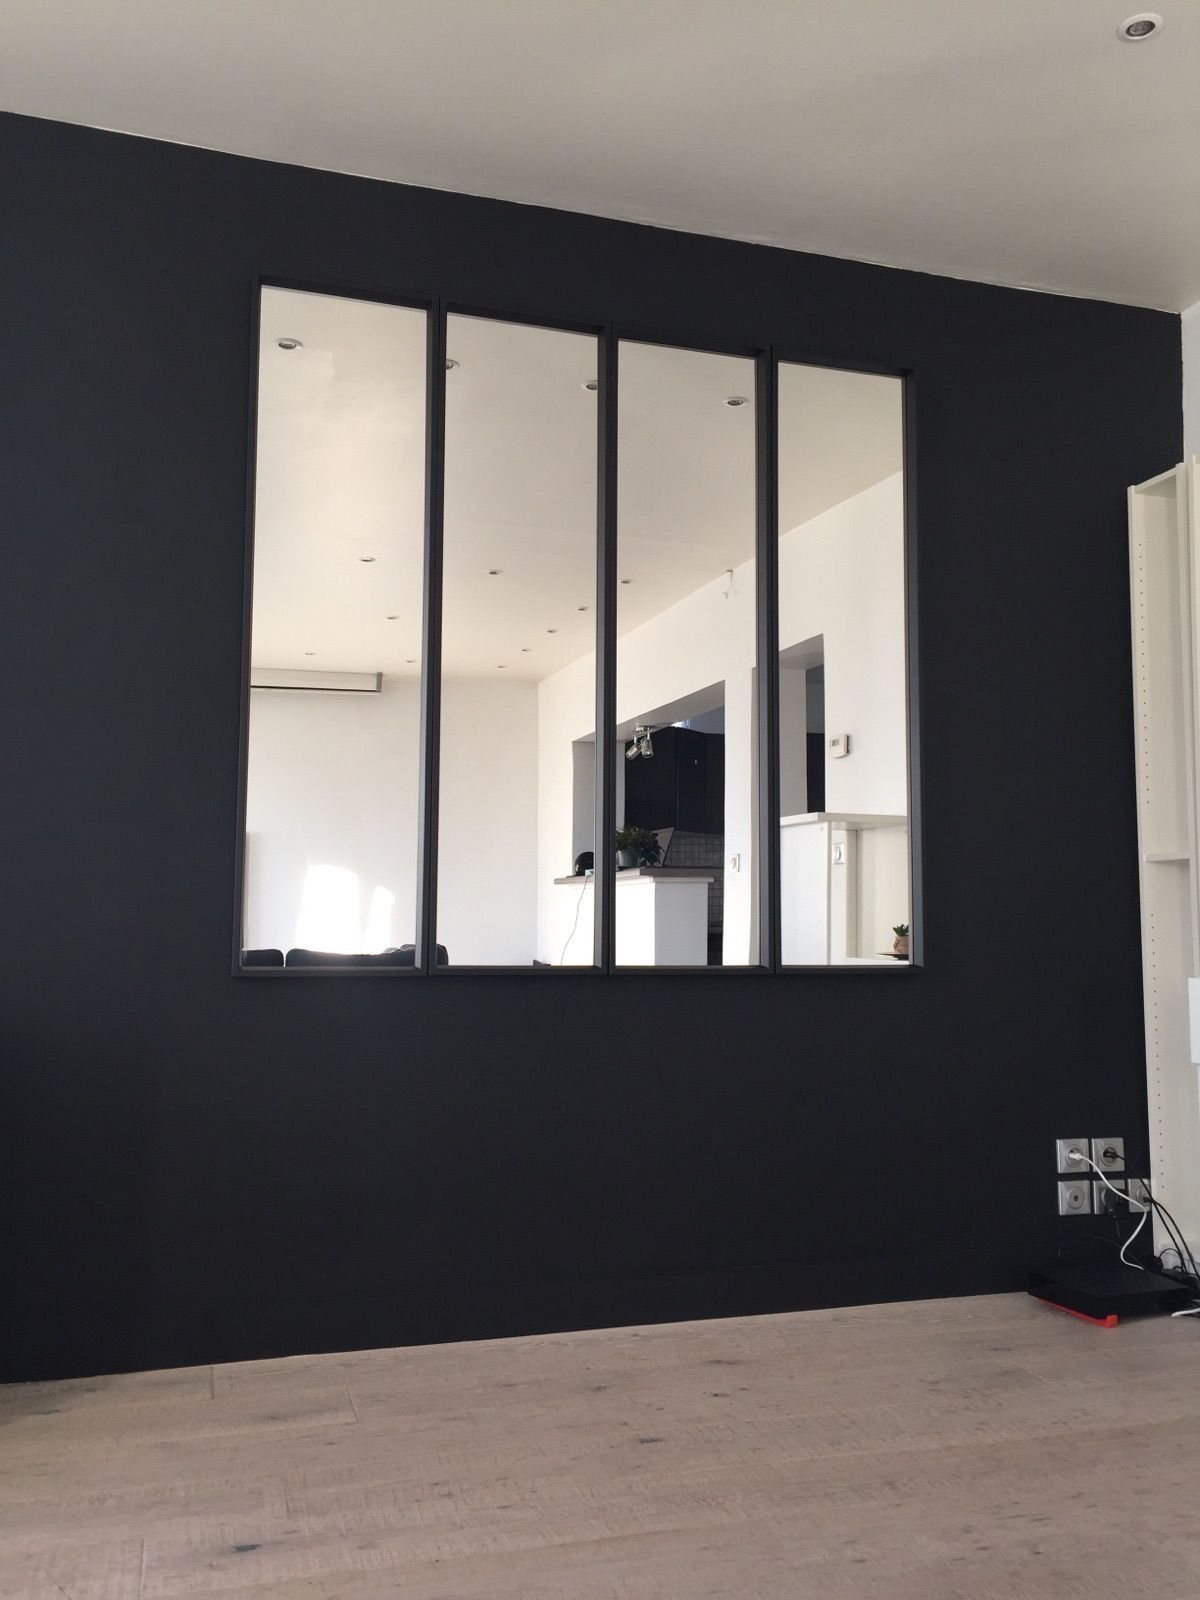 nissedal diy ikea miroir ikea et verri re. Black Bedroom Furniture Sets. Home Design Ideas